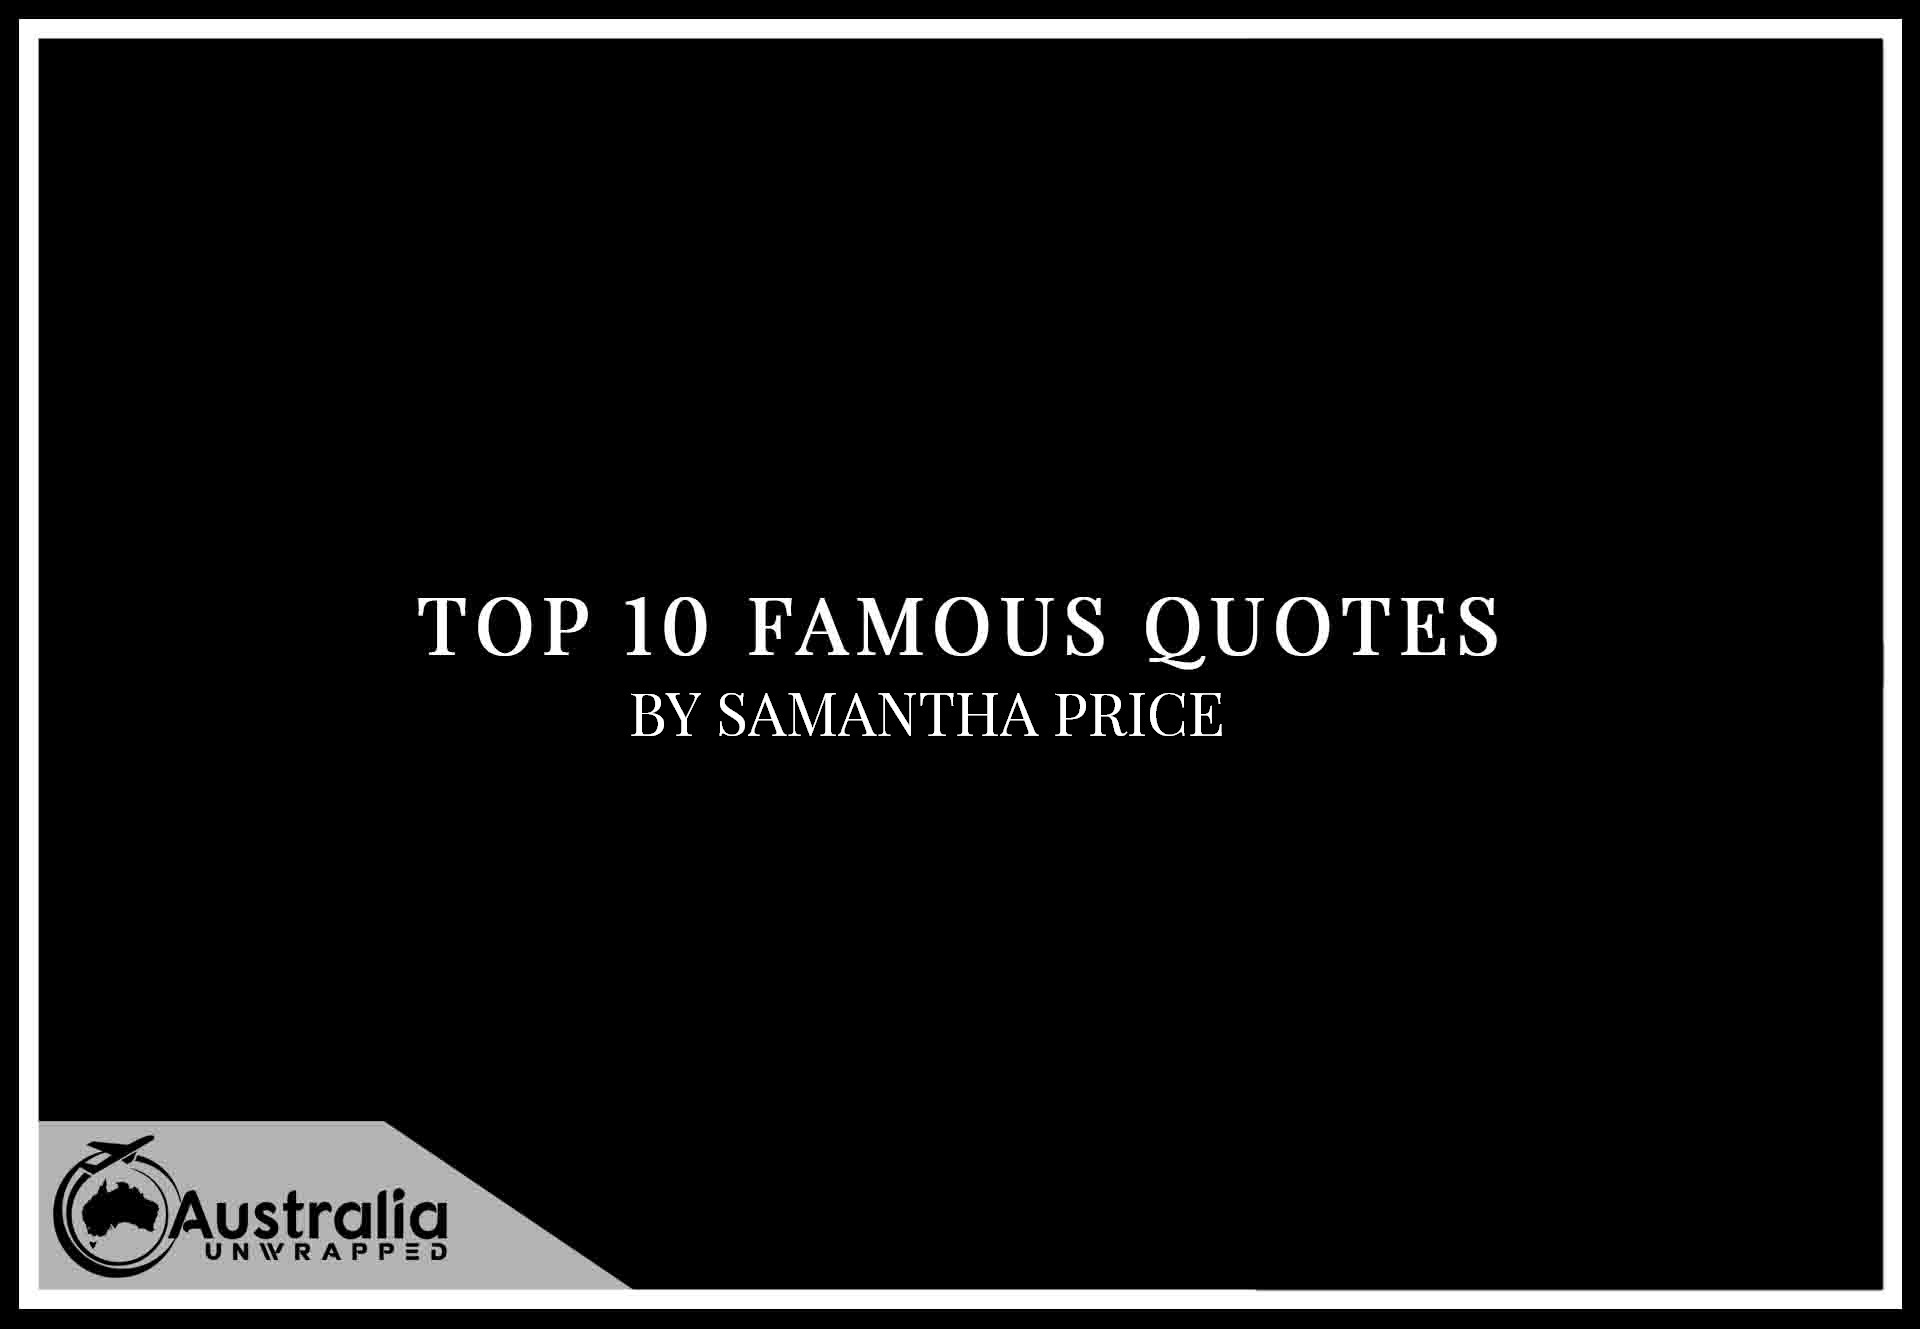 Top 10 Famous Quotes by Author Samantha Price